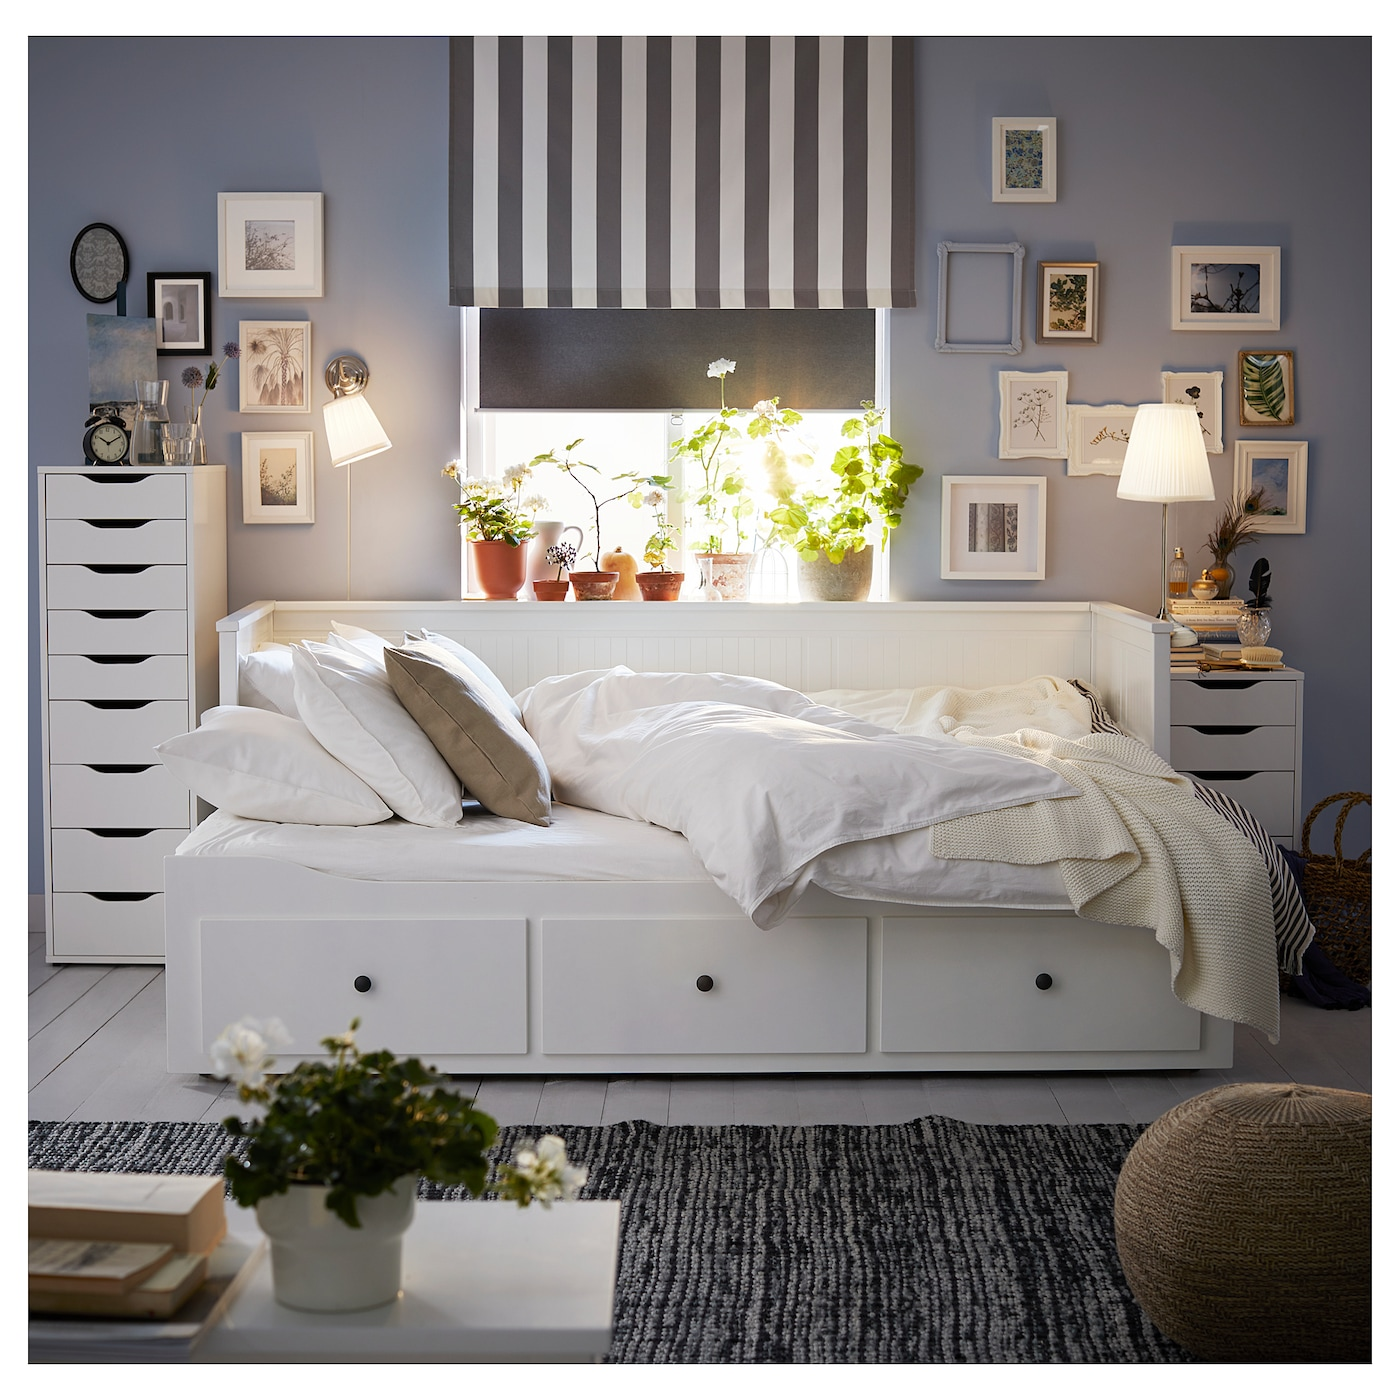 HEMNES Day-bed frame with 3 drawers - white 3x3 cm